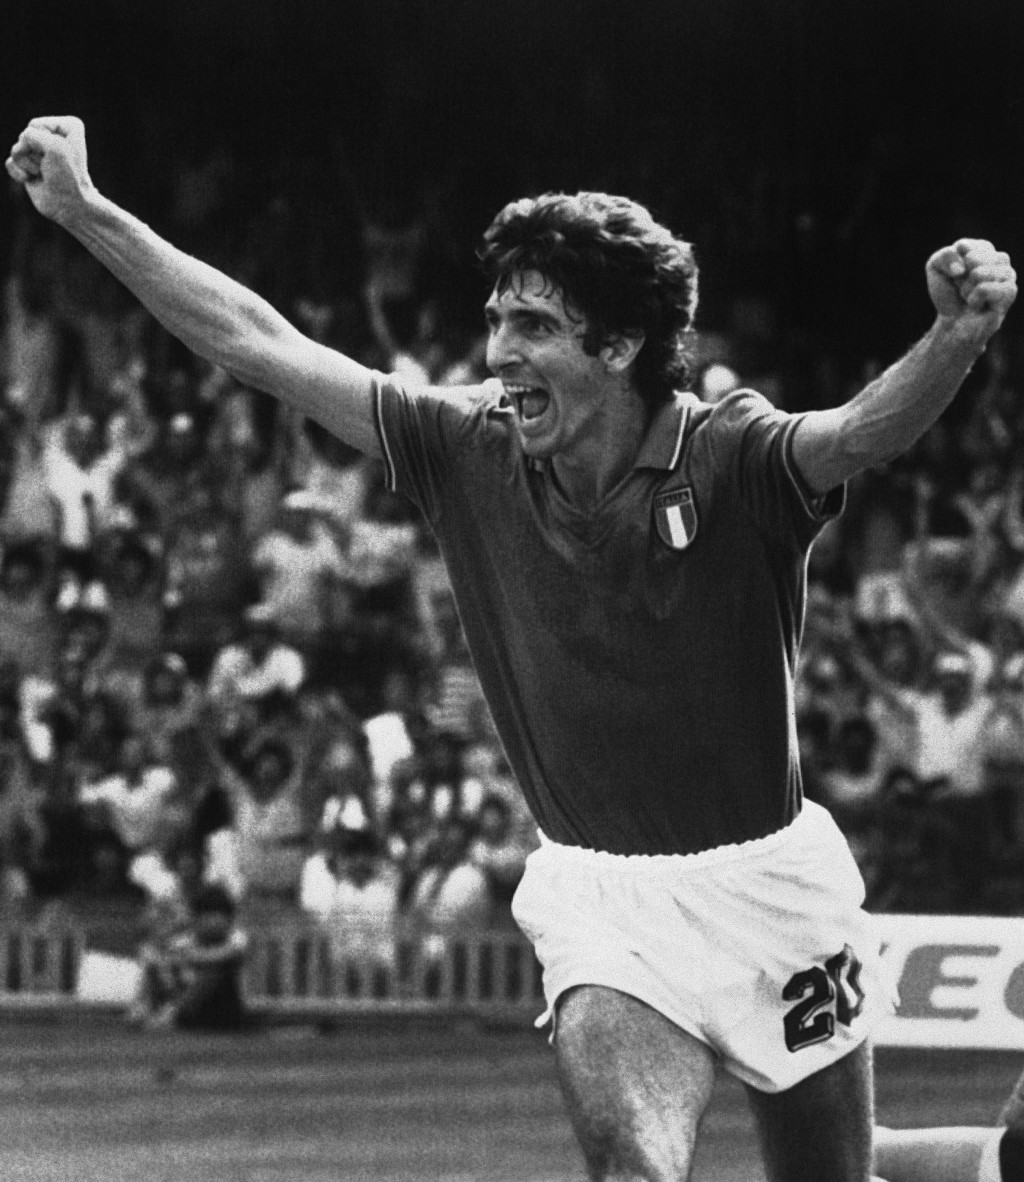 FILE - In this July 8, 1982 file photo, Italy's Paolo Rossi races across the pitch after scoring his team's first goal against Poland during the socce...